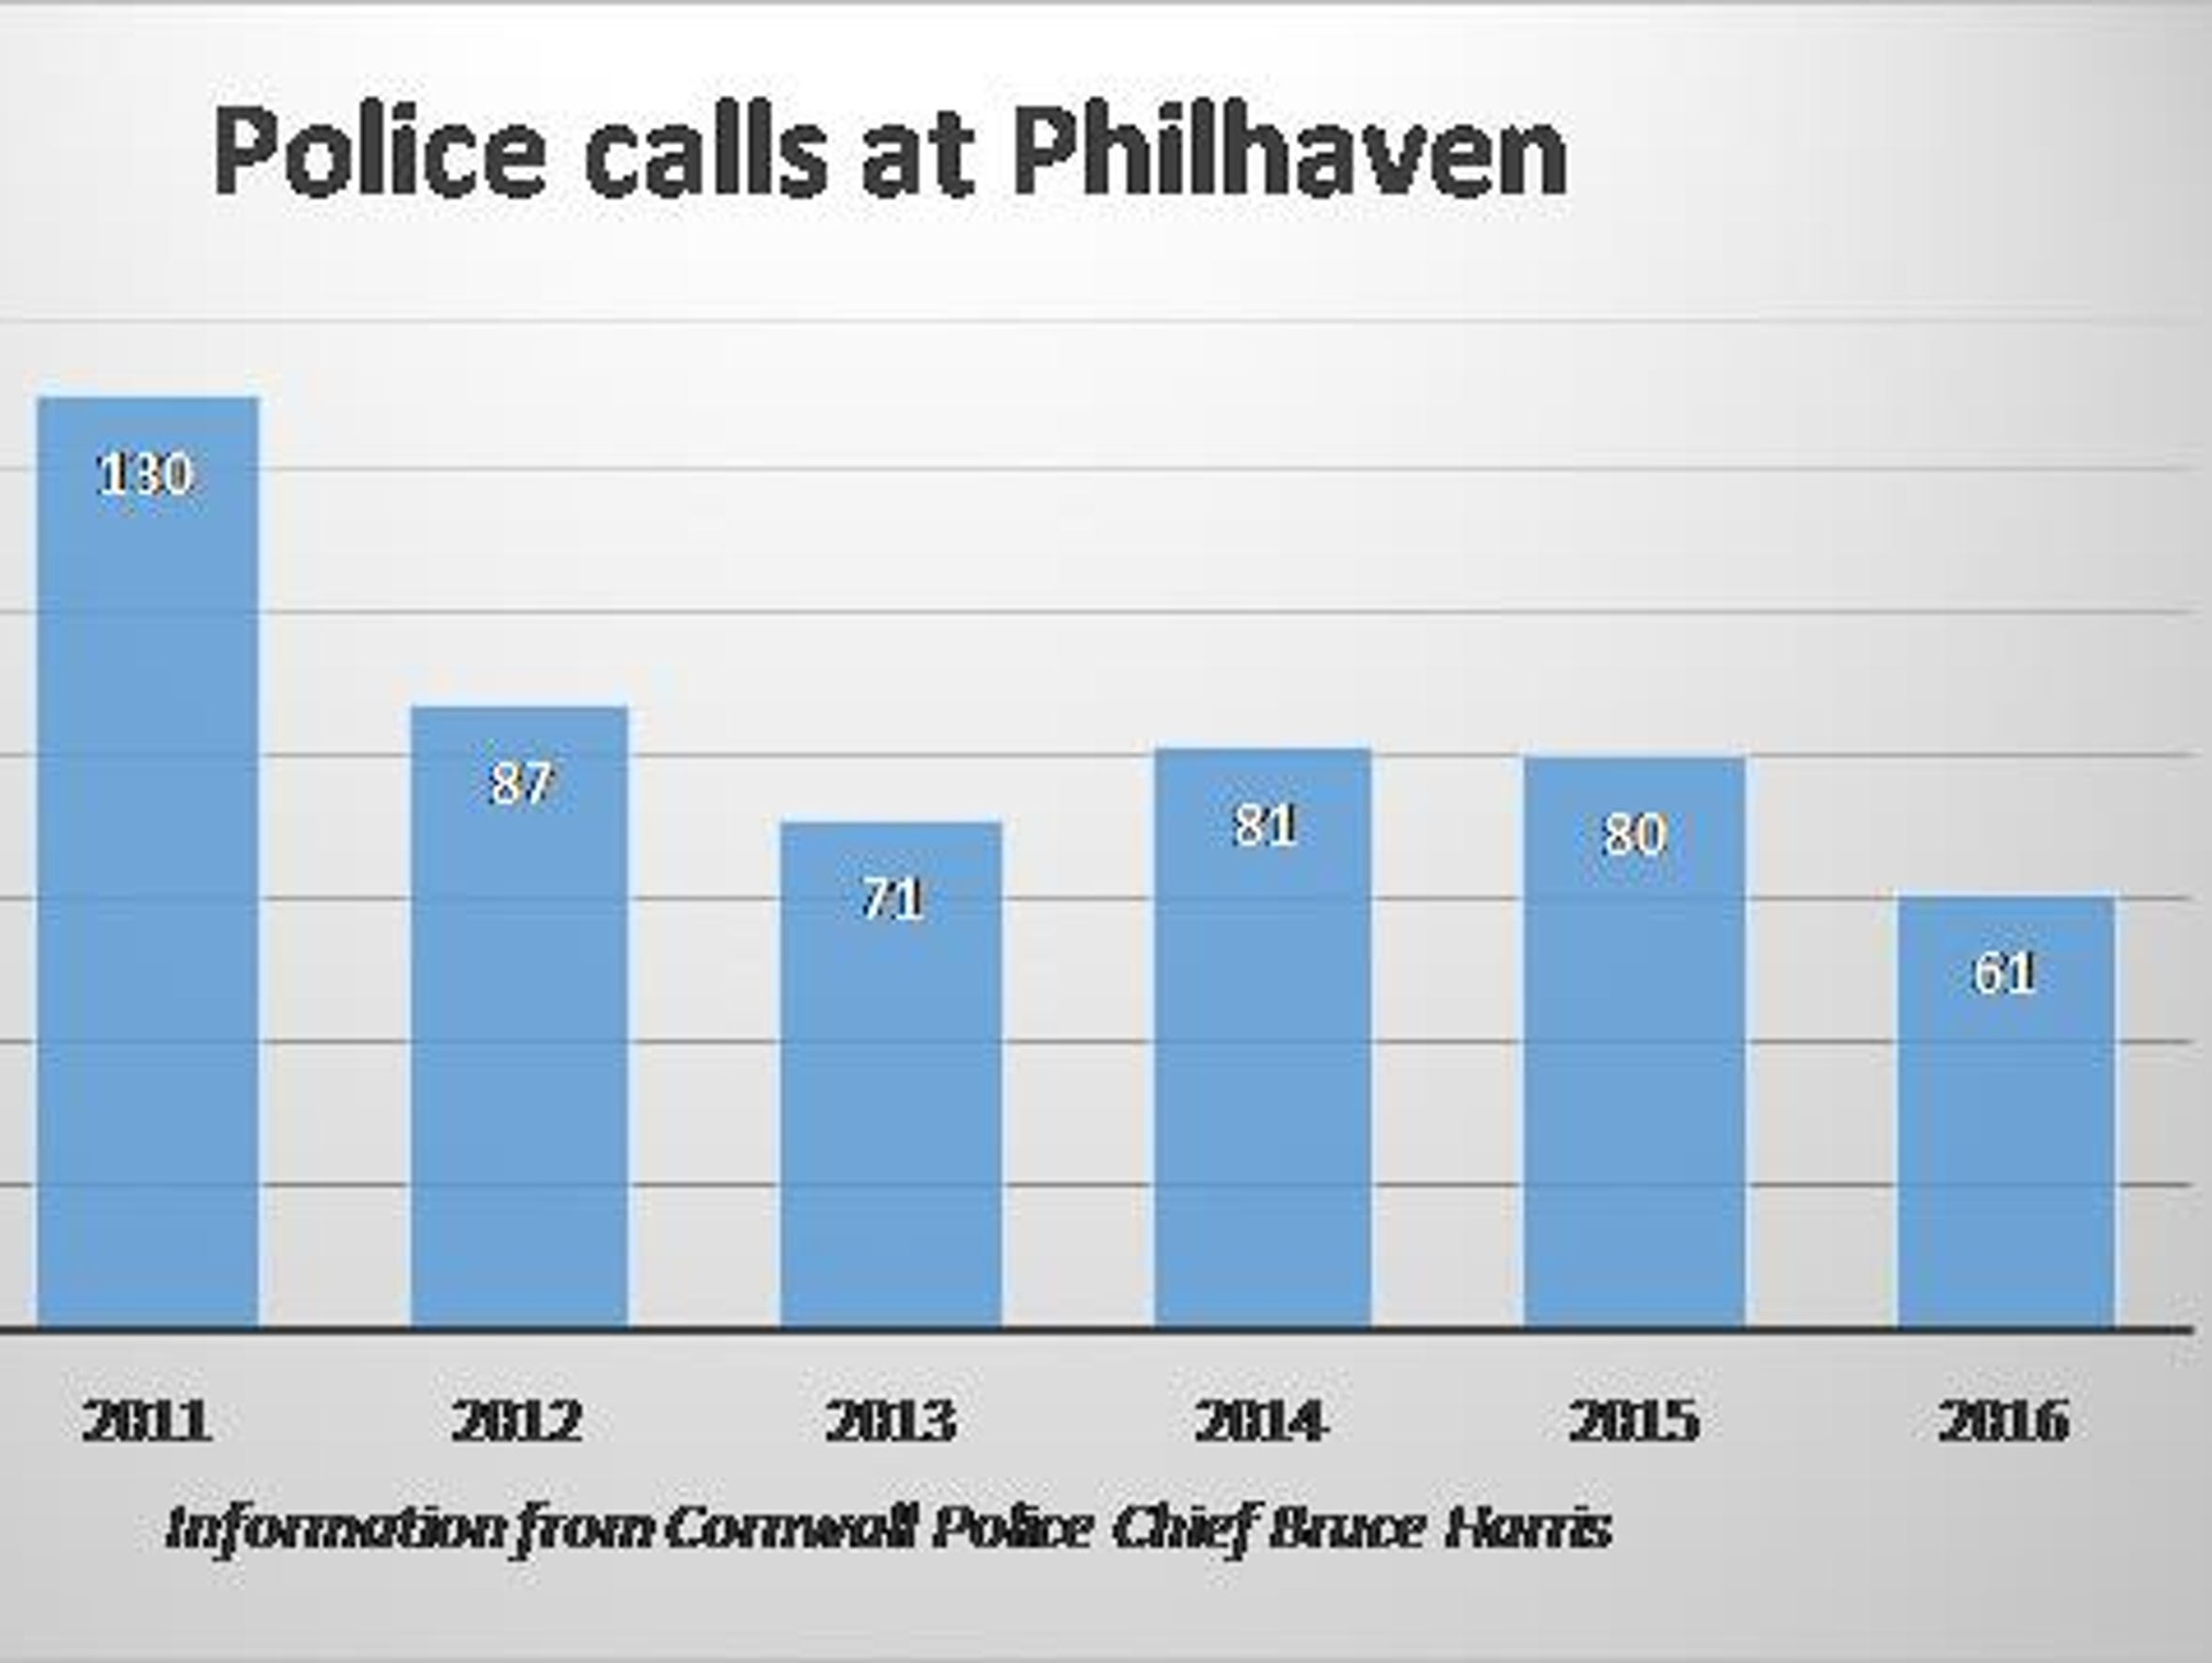 Calls for police services at Philhaven have remained